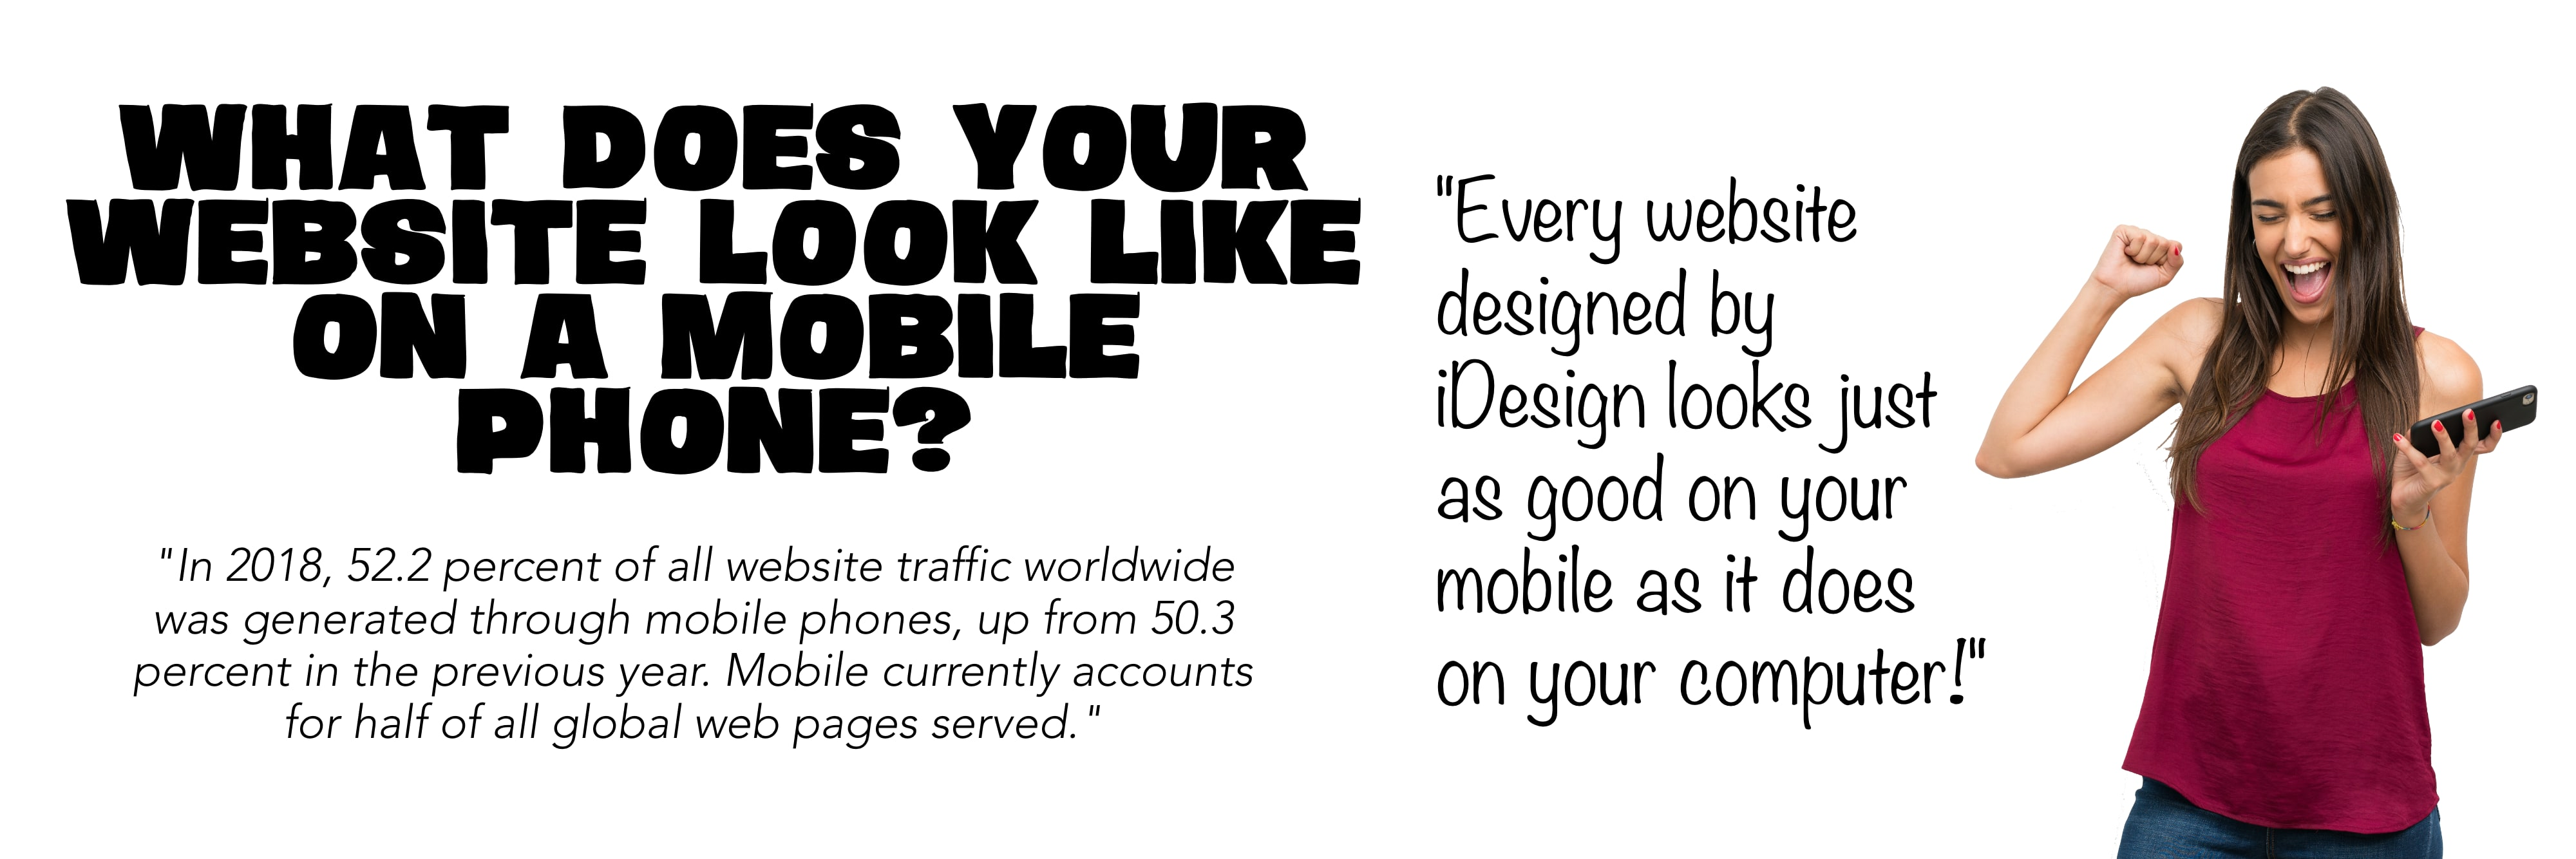 iDesign websites look great on your mobile phone